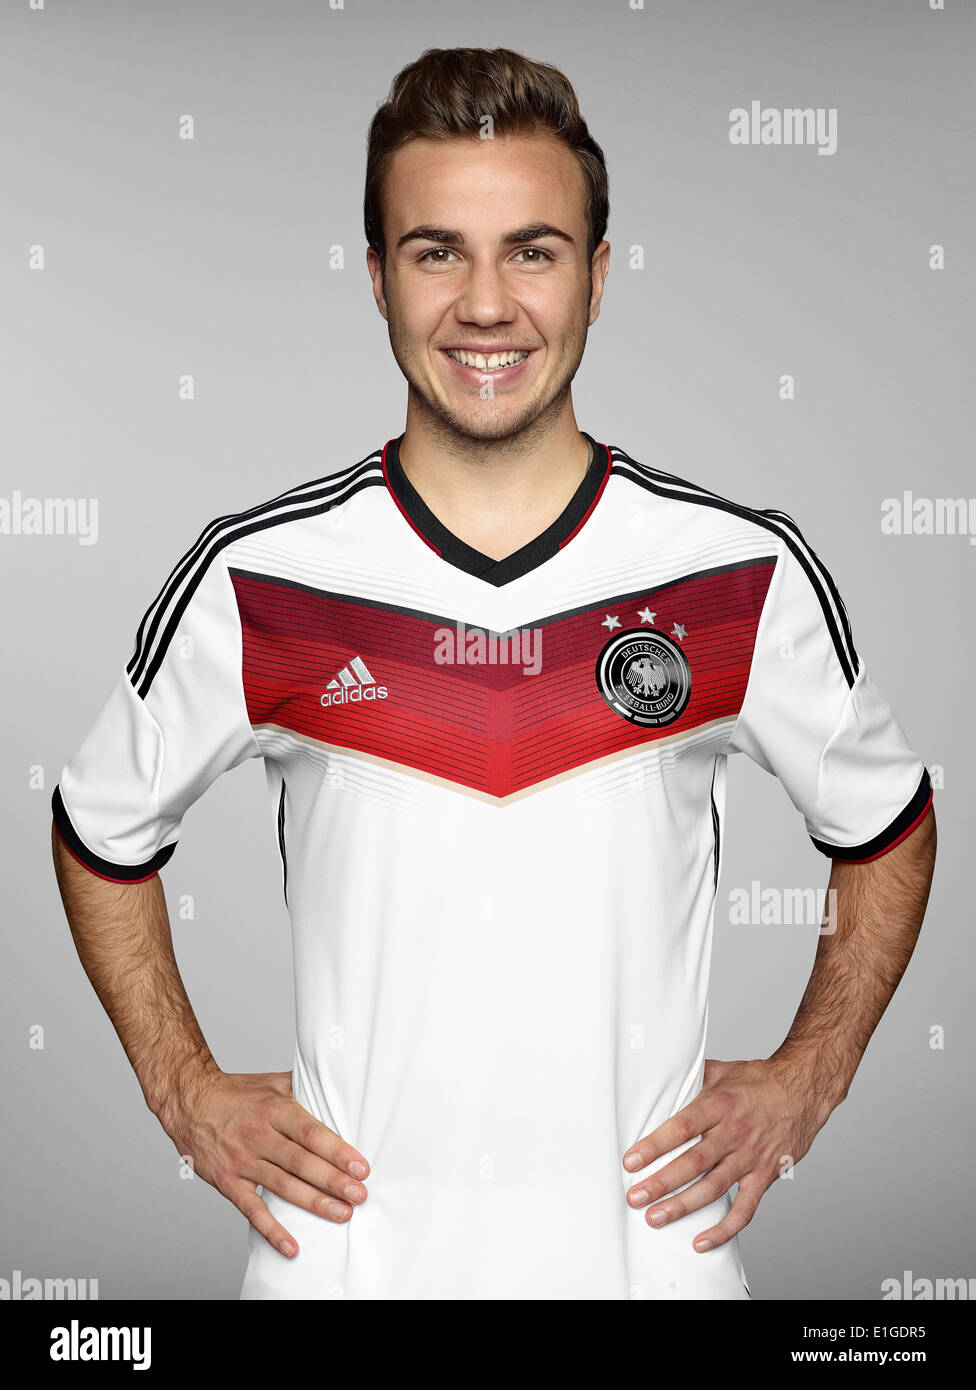 FIFA World Cup 2014 - photocall Team Germany, 24 May 2014 in Passeier, Italy: Mario Goetze. Photo credit: Bongarts/Getty Images/German Football Association/dpa (editorial use only) - Stock Image